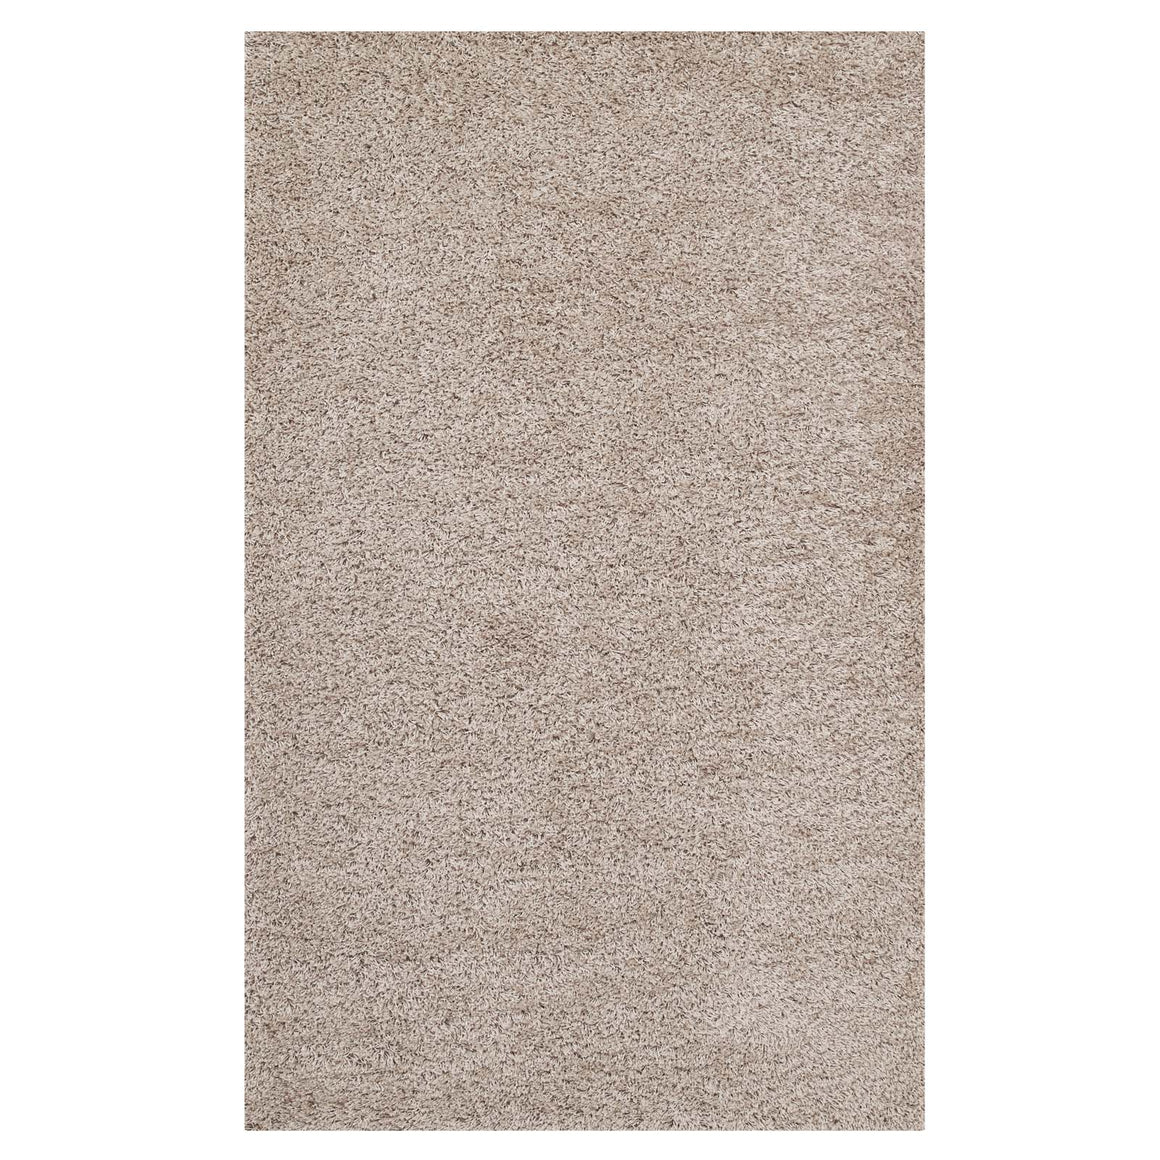 Enyssa Solid 8x10 Shag Area Rug  Beige and Ivory